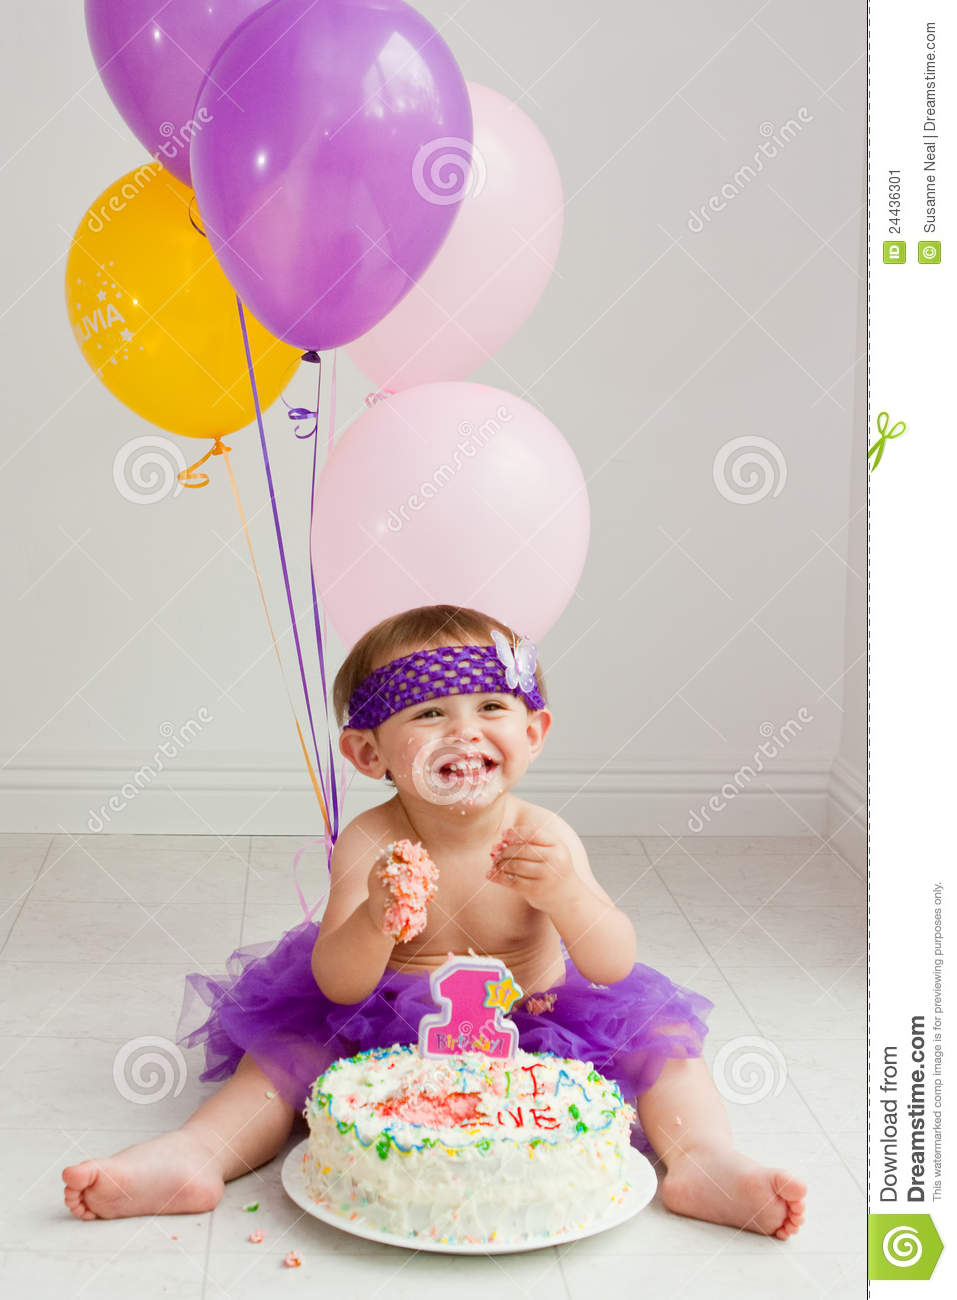 One Year Old Birthday Girl With Cake Stock Photo 24436301